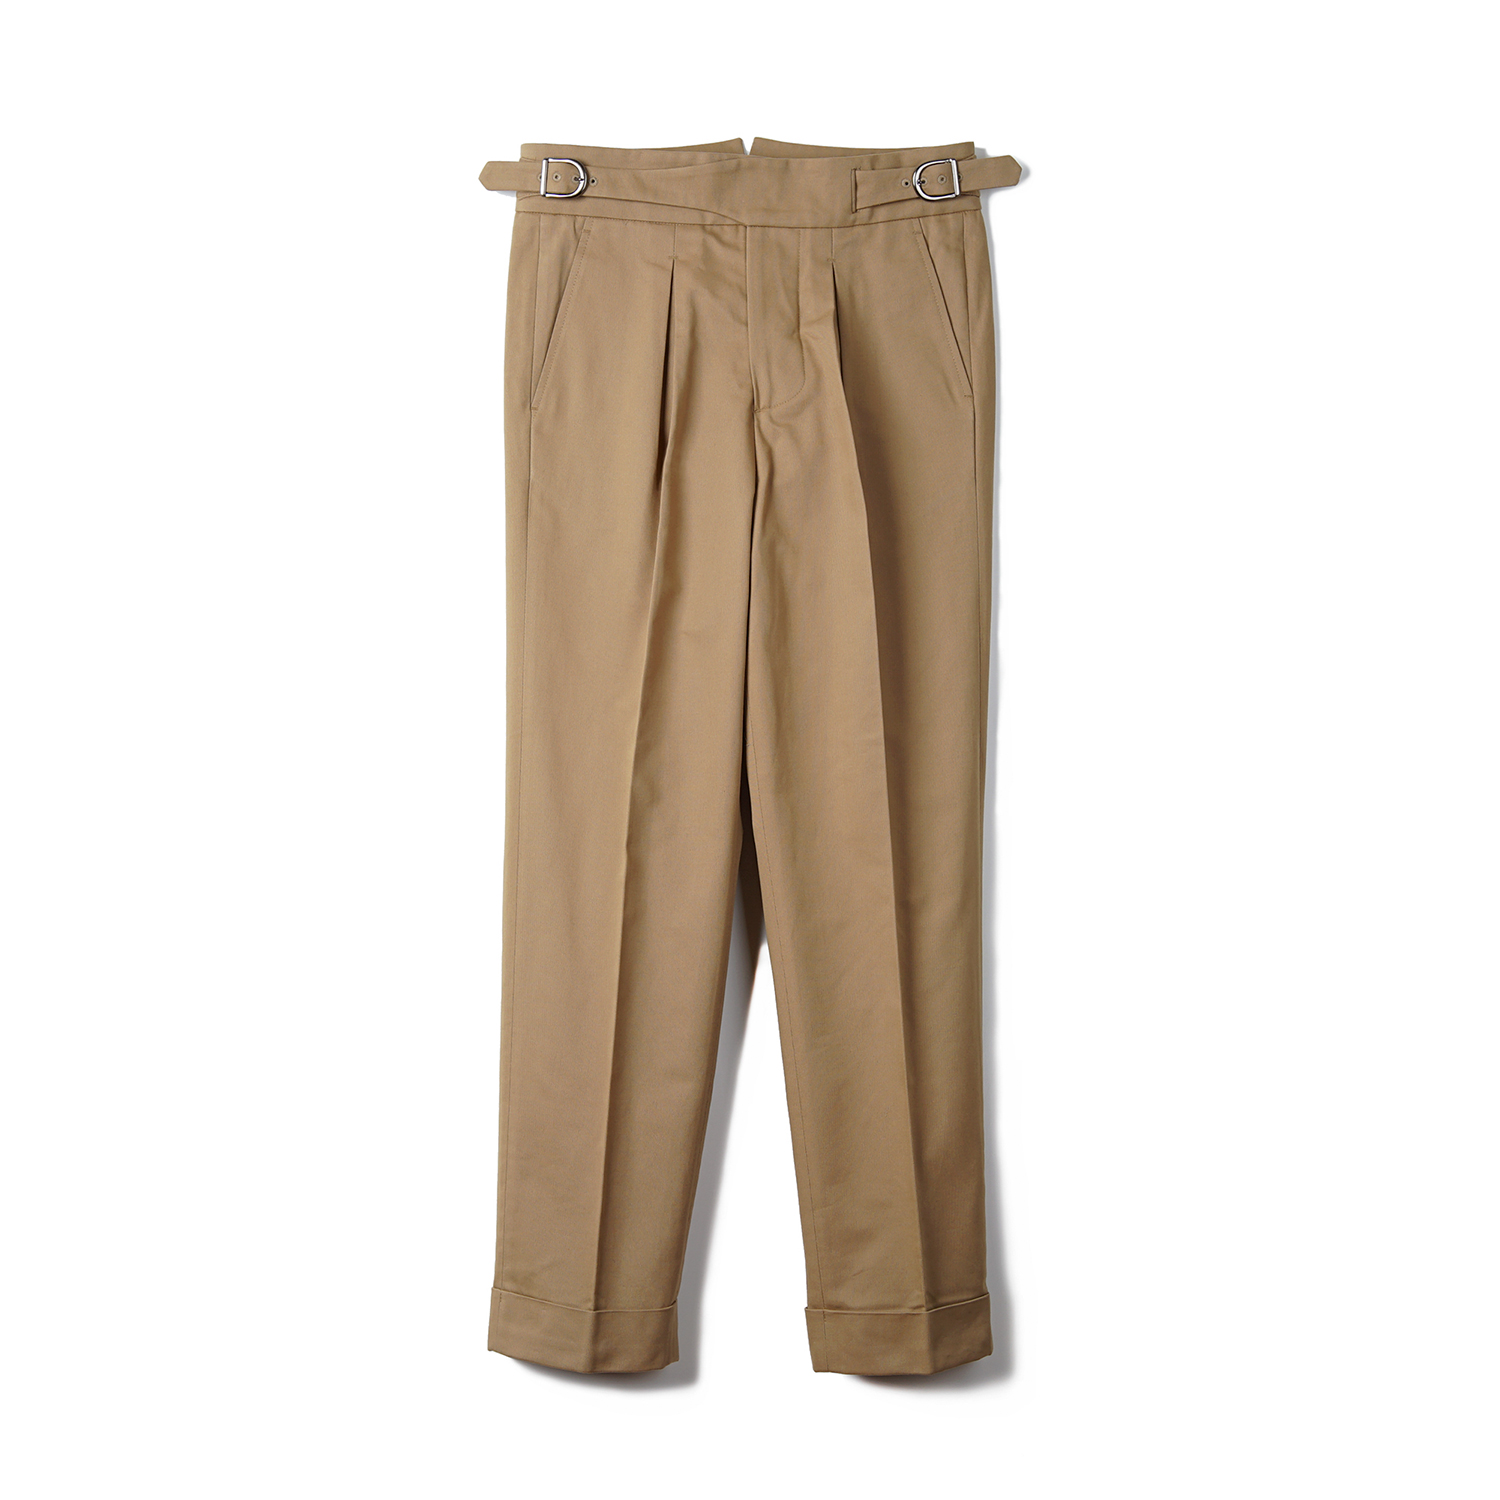 BTS Cotton Gurkha Pants - Khaki